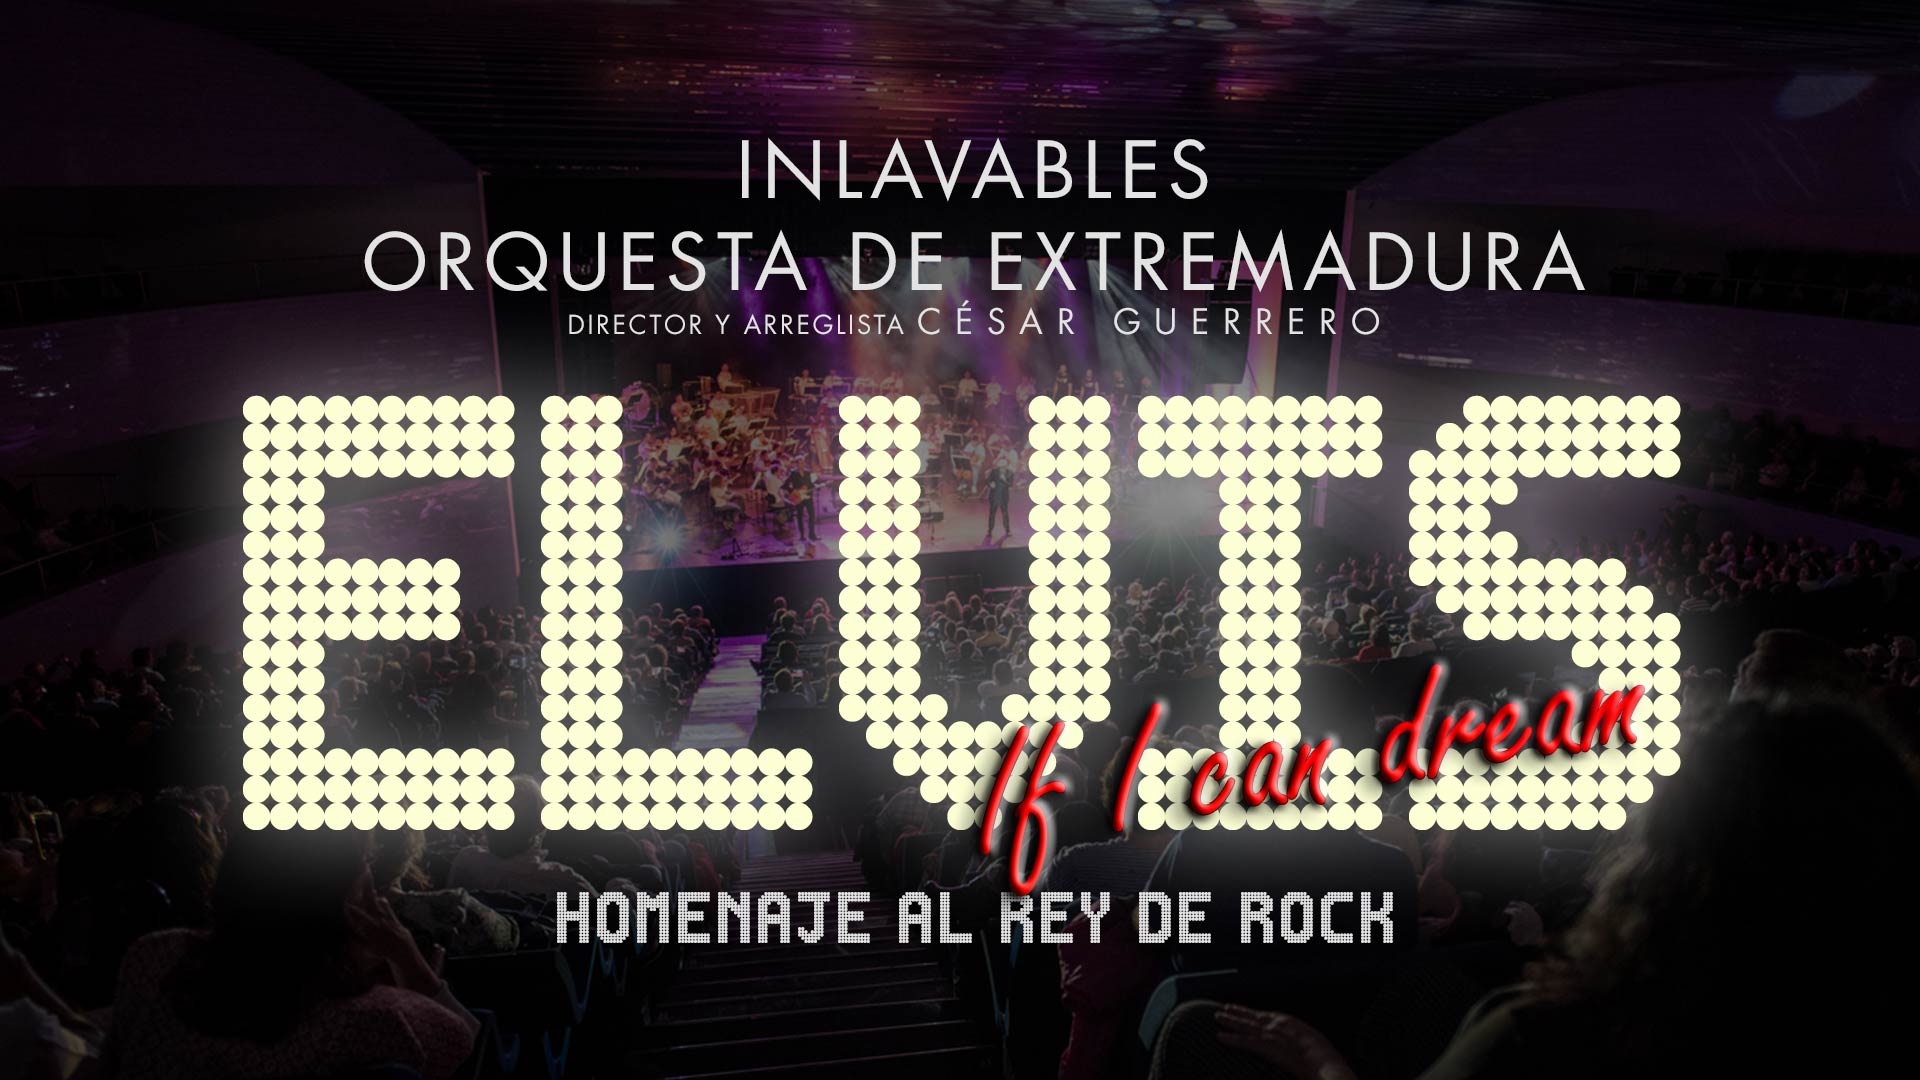 Elvis. If I can dream. El homenaje de Inlavables y la OEX al rey del rock